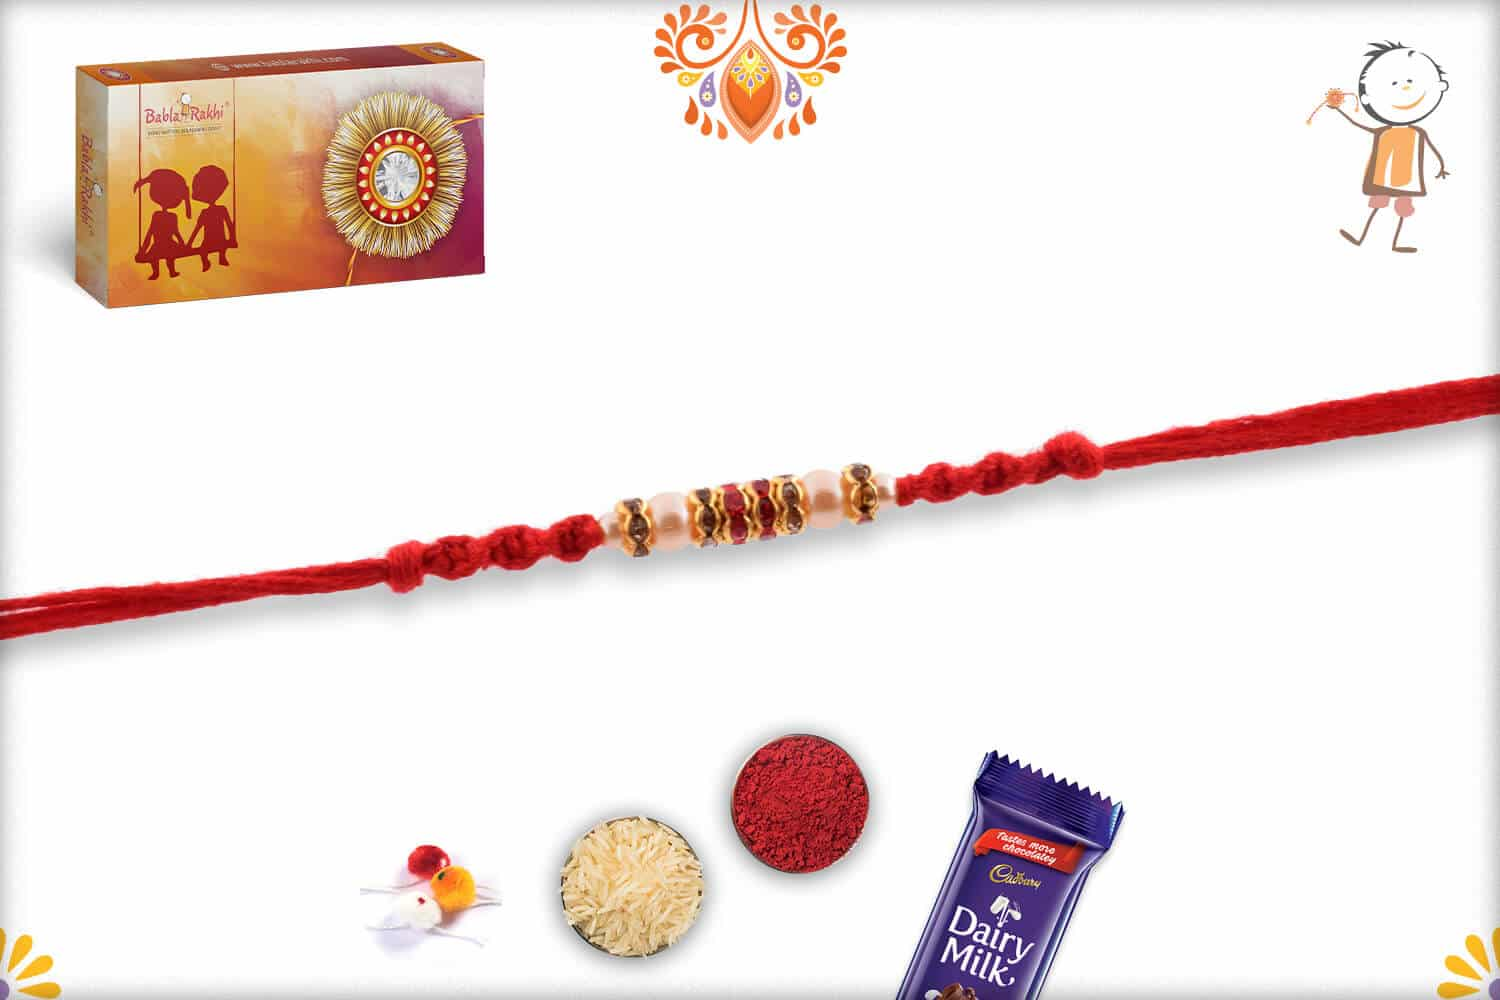 Pearl and Diamond Rakhi with Handcrafted Red Thread | Send Rakhi Gifts Online 2